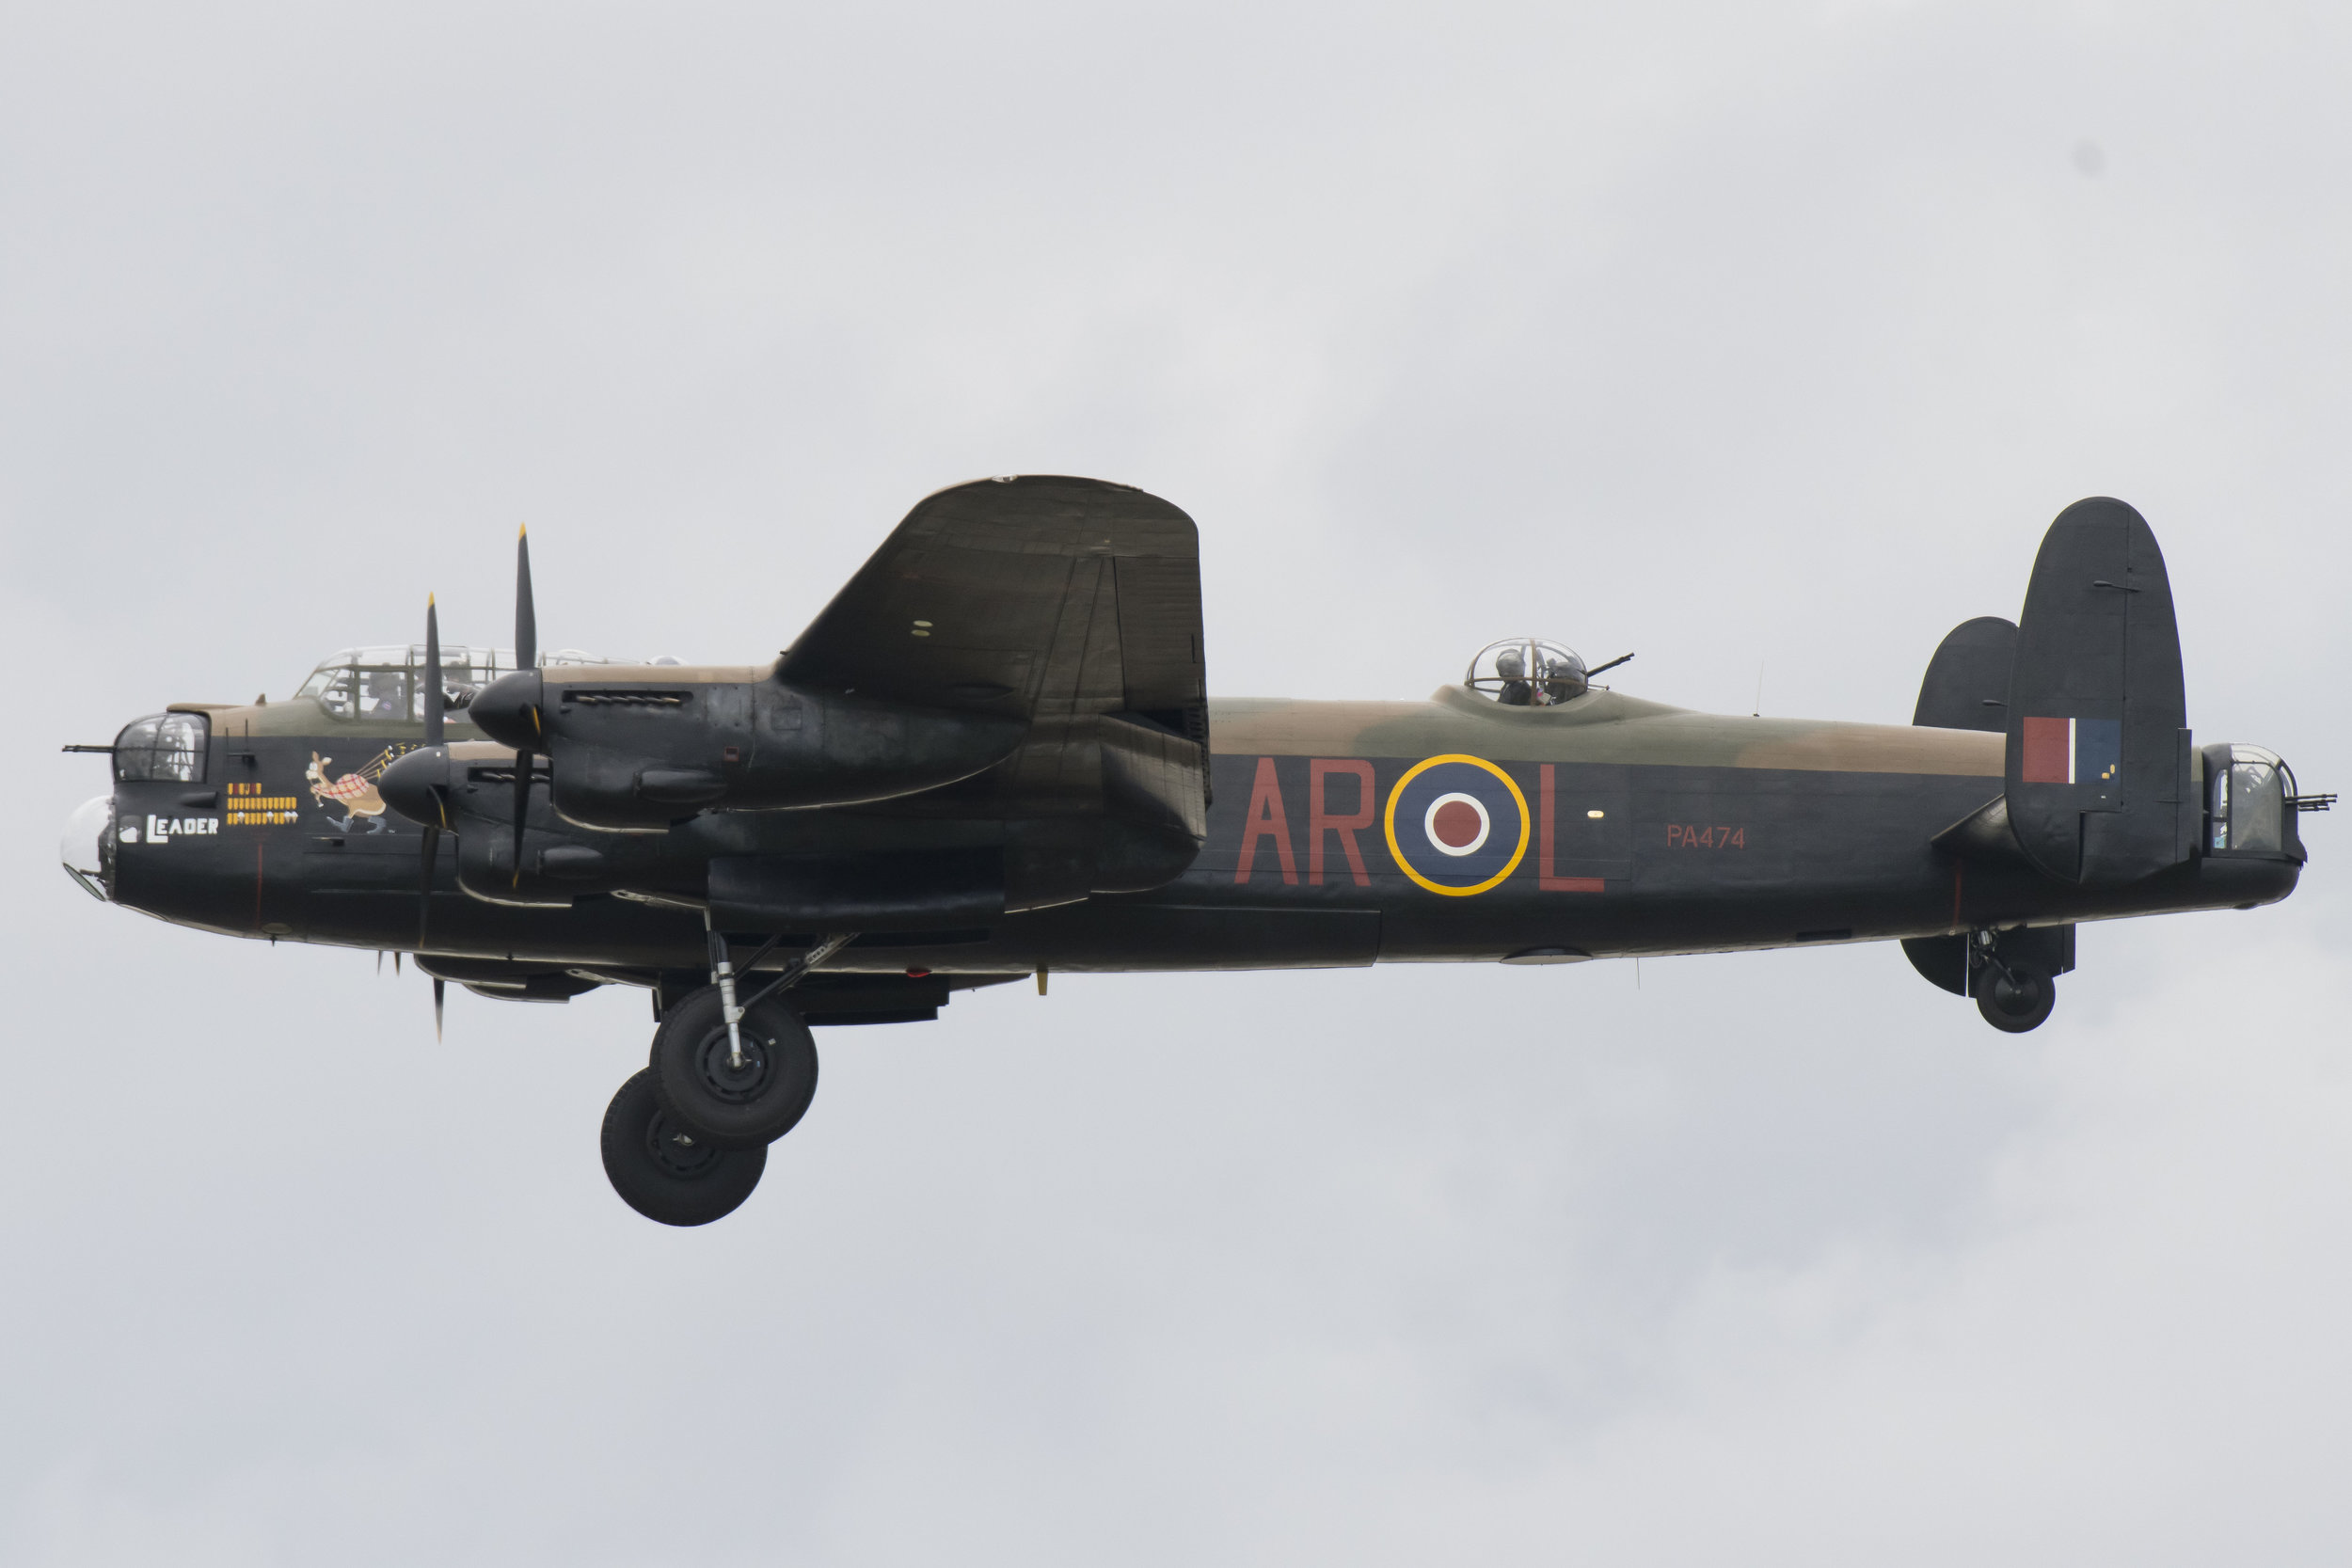 FAIRFORD, ENGLAND - JULY 21: A Lancaster bomber from the Battle of Britain Memorial Flight performs during the the International Air Tattoo at RAF Fairford on July 21, 2019 in Fairford, England. The Royal International Air Tattoo (RIAT) is the world's largest military air show, held in support of The Royal Air Force Charitable Trust. (Photo by Matthew Horwood/Getty Images)